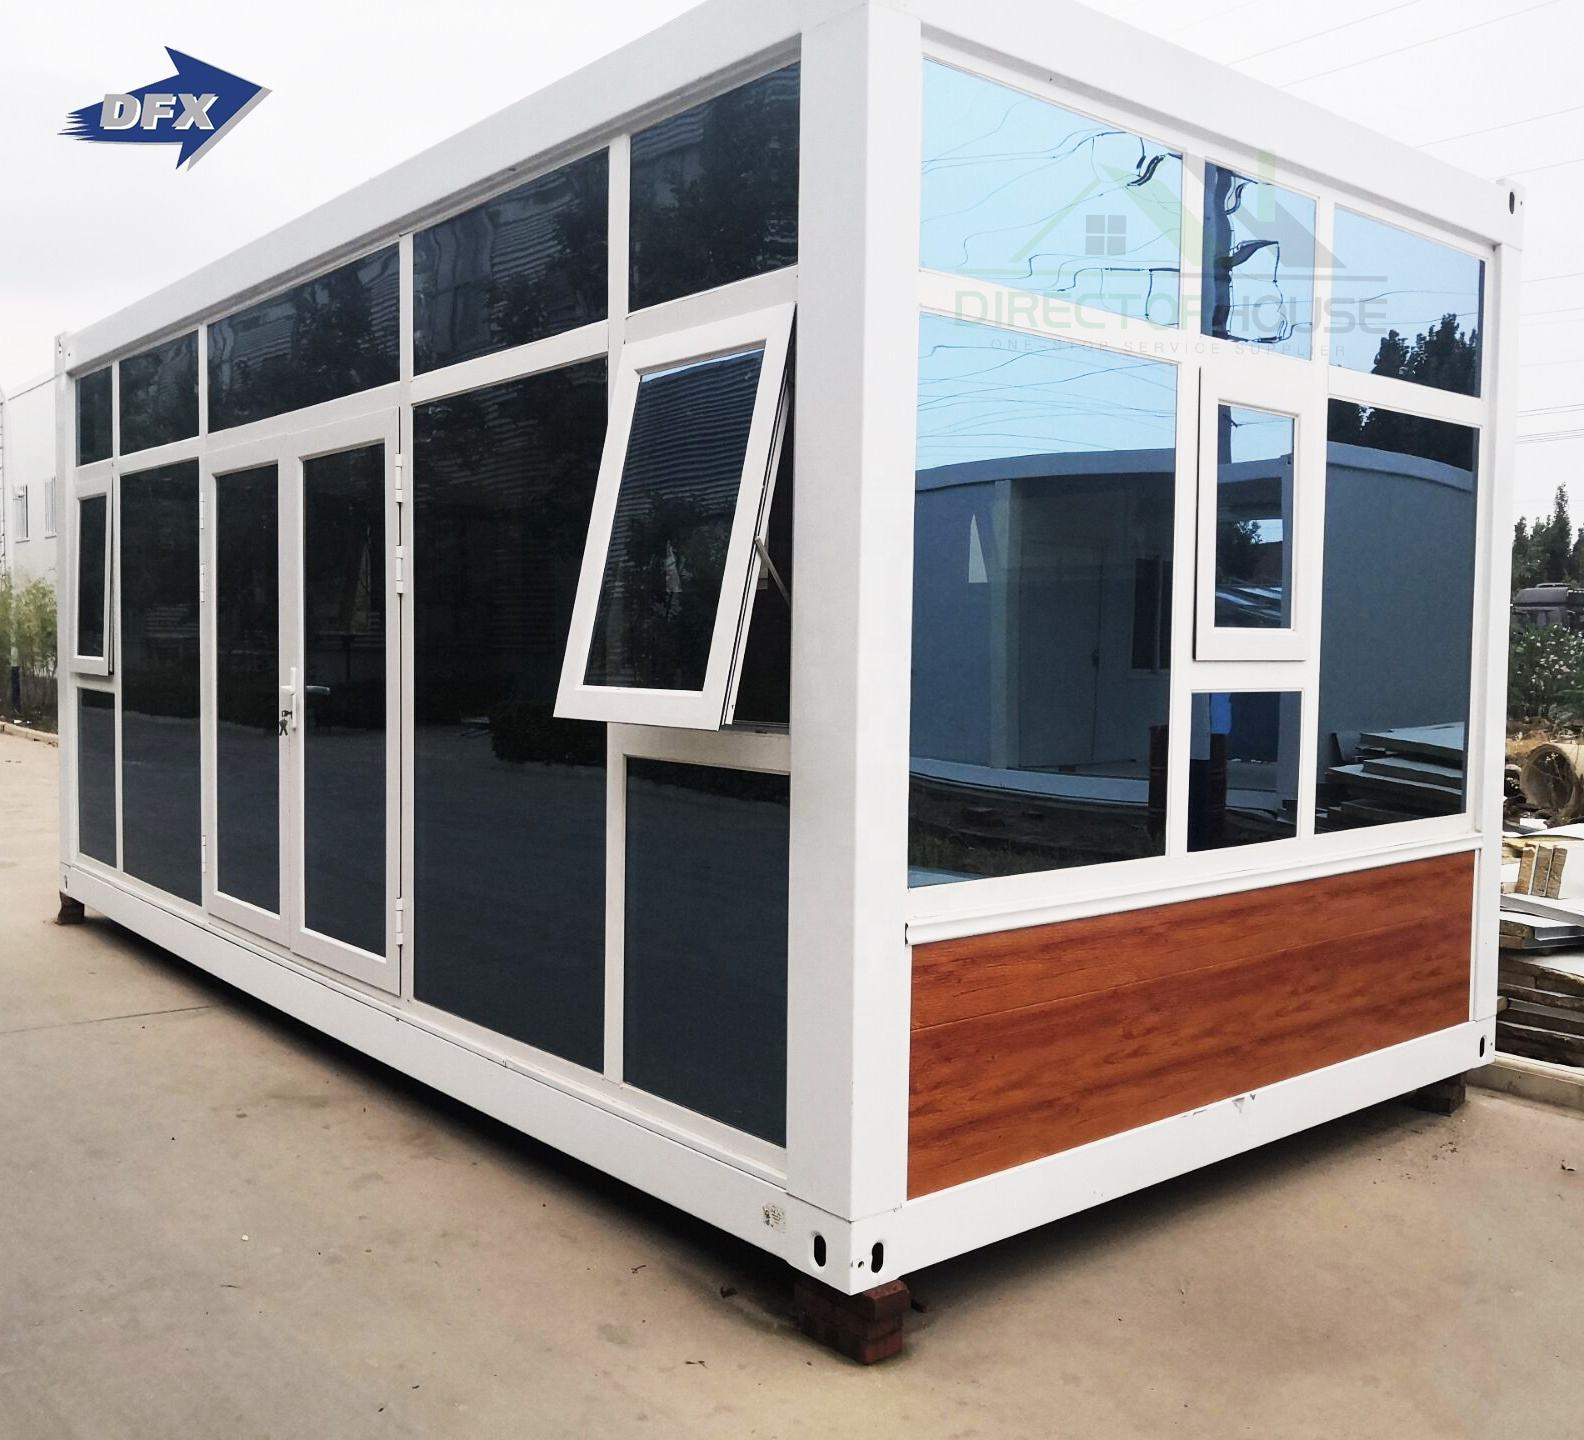 2 storeys flat pack prefab portable container house living home